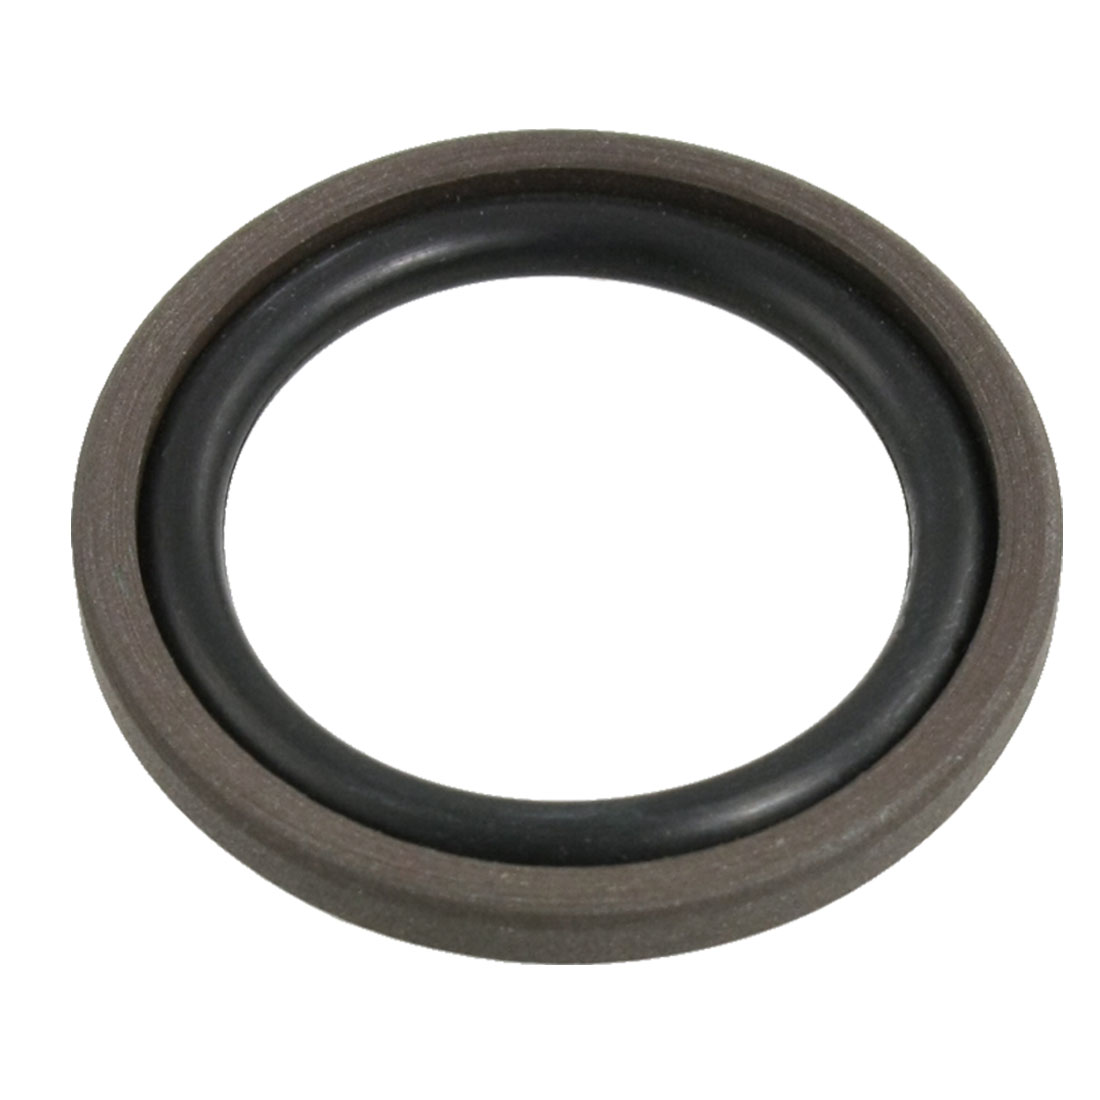 Hydraulic Cylinder Piston Seal Glyd Ring 42x30x4.2mm